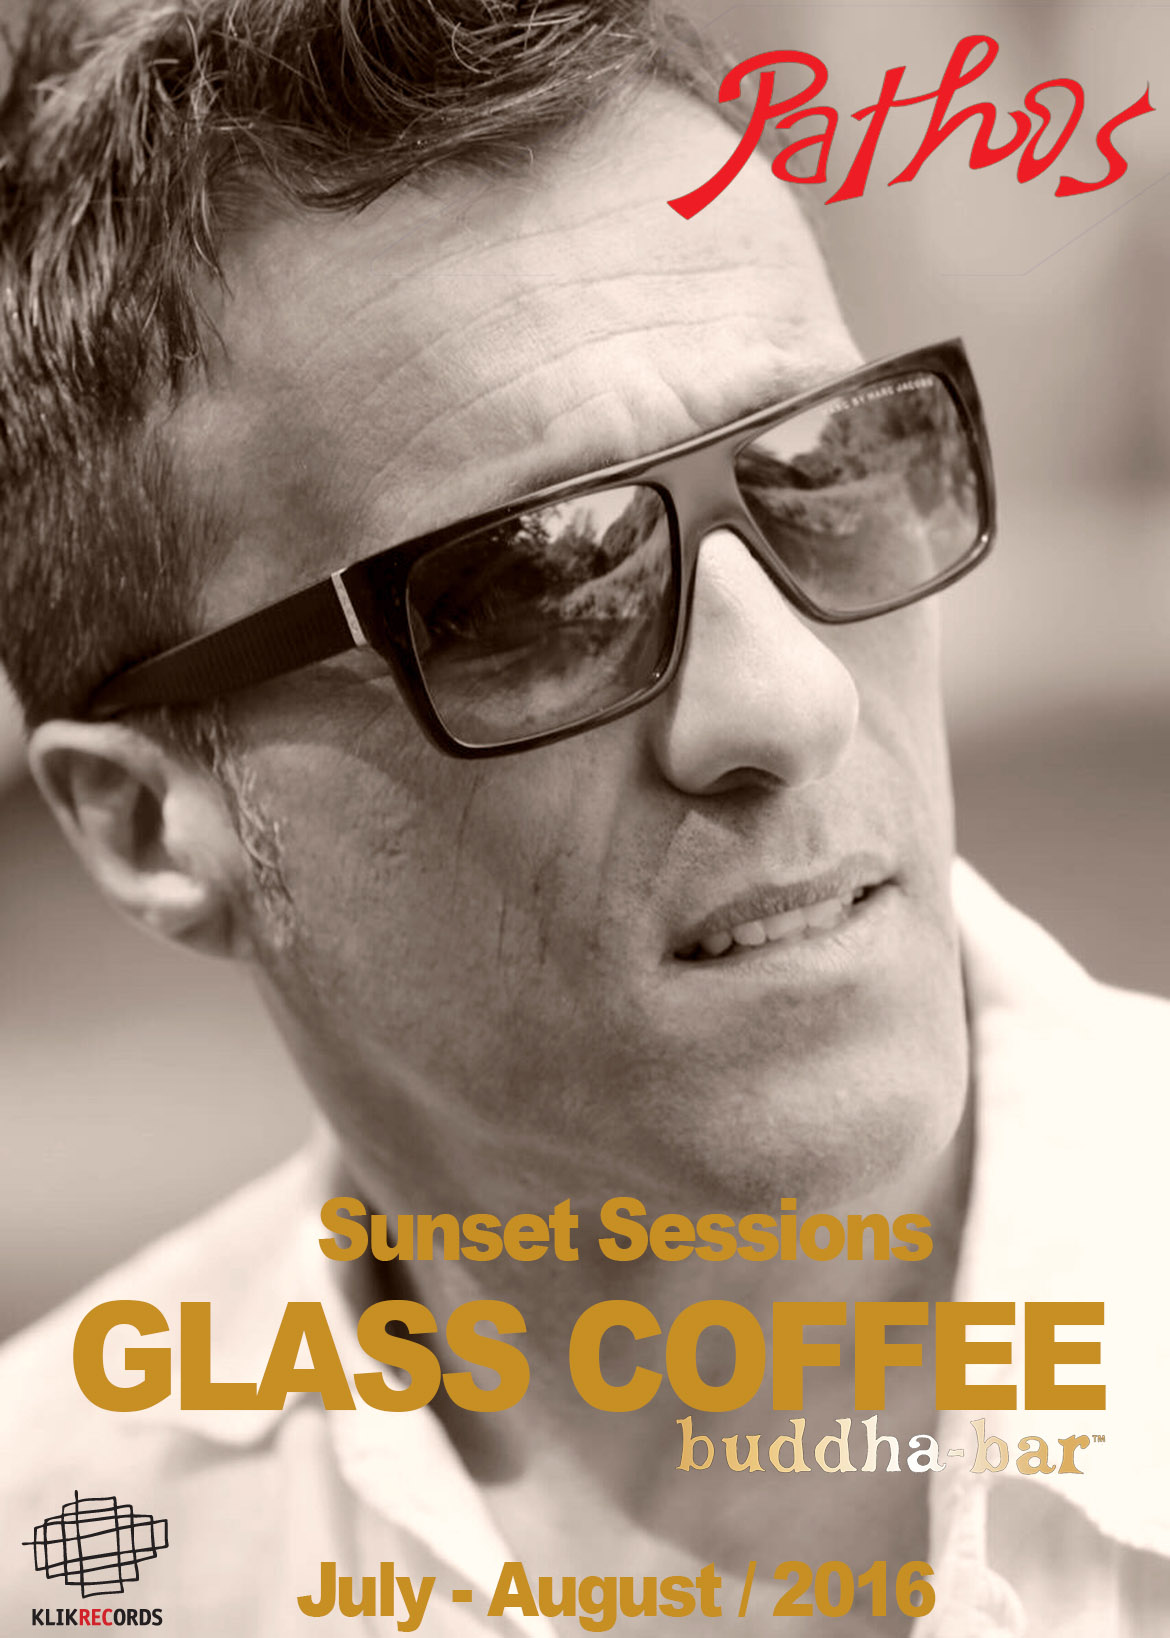 Sunset Sessions Glass Coffee Buddha Bar